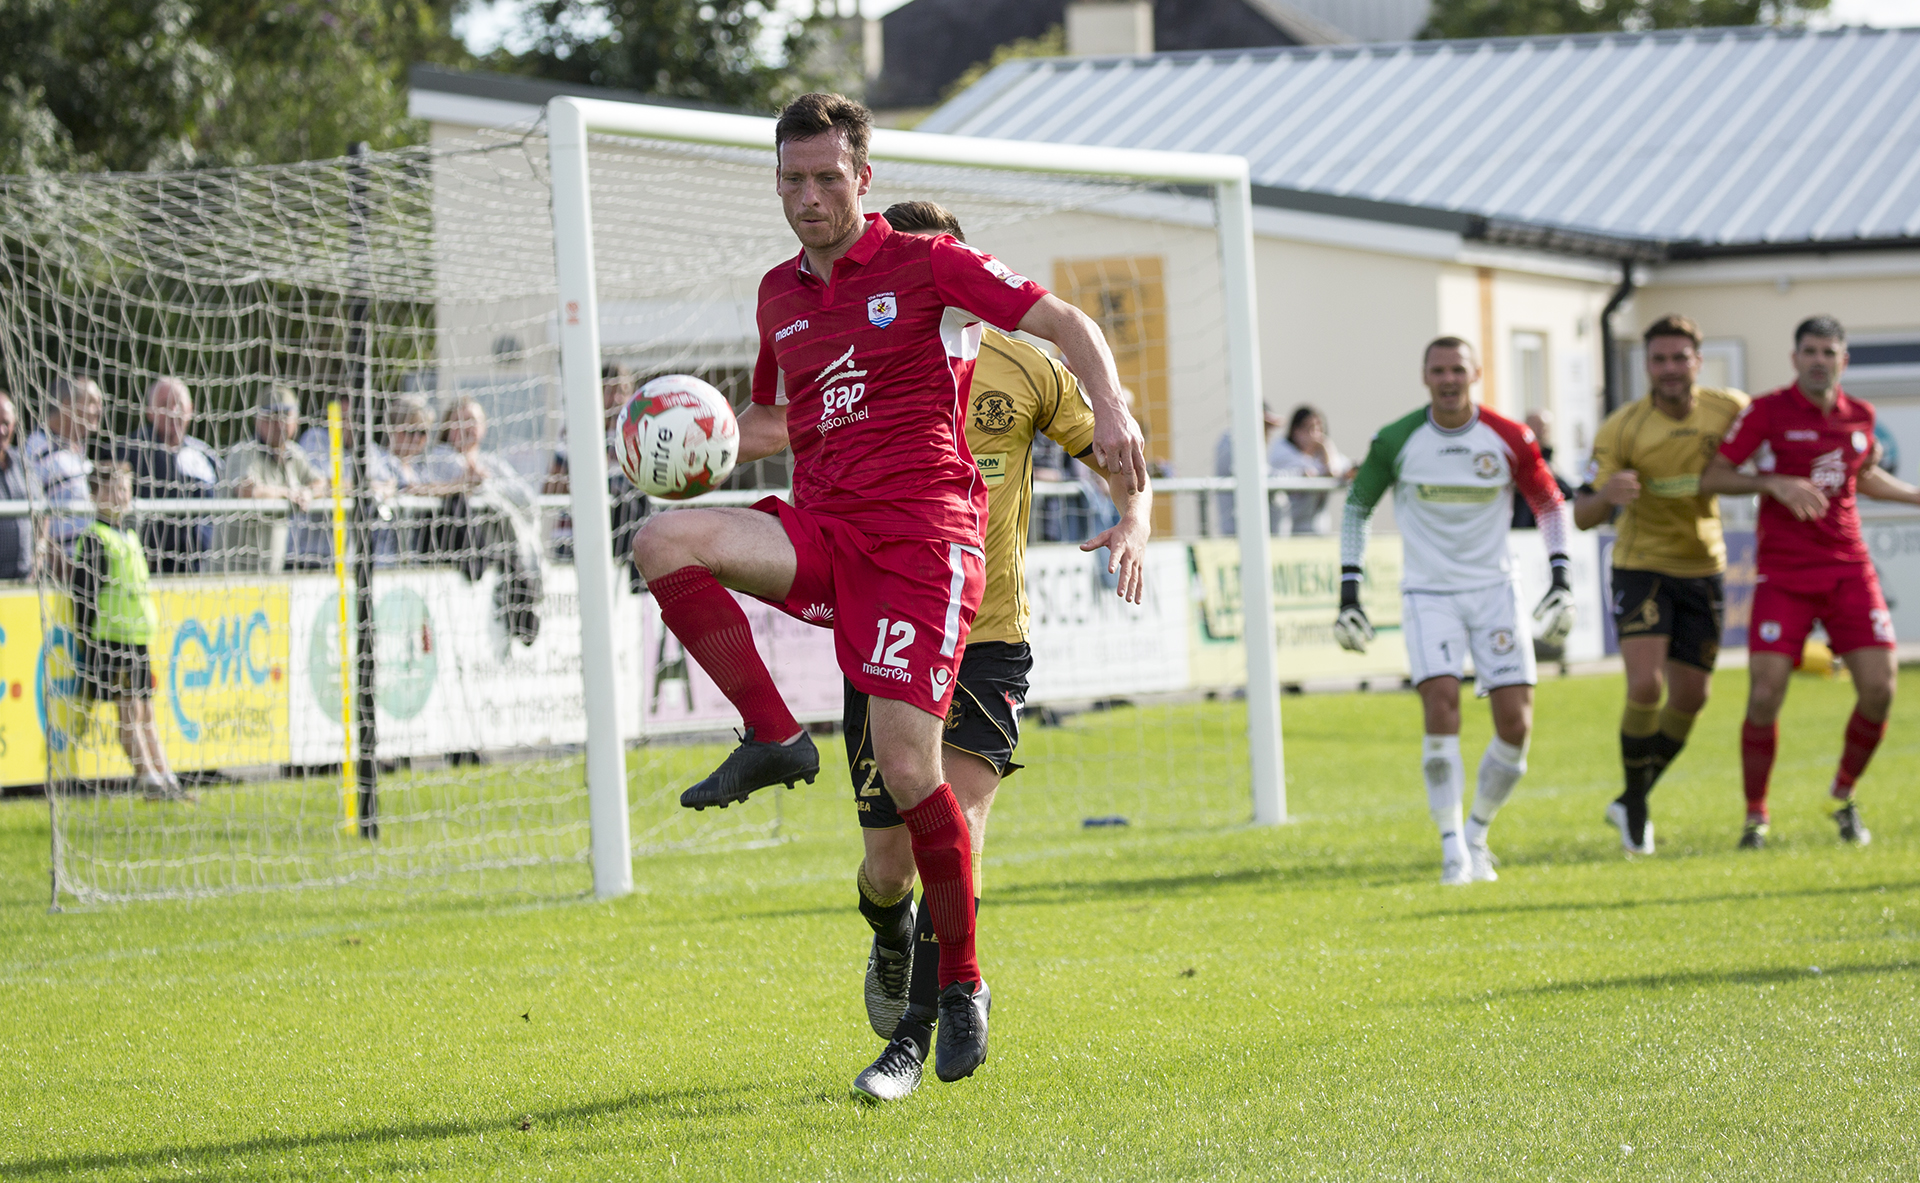 Matty Williams makes his debut for The Nomads against Carmarthen Town - © - NCM Media